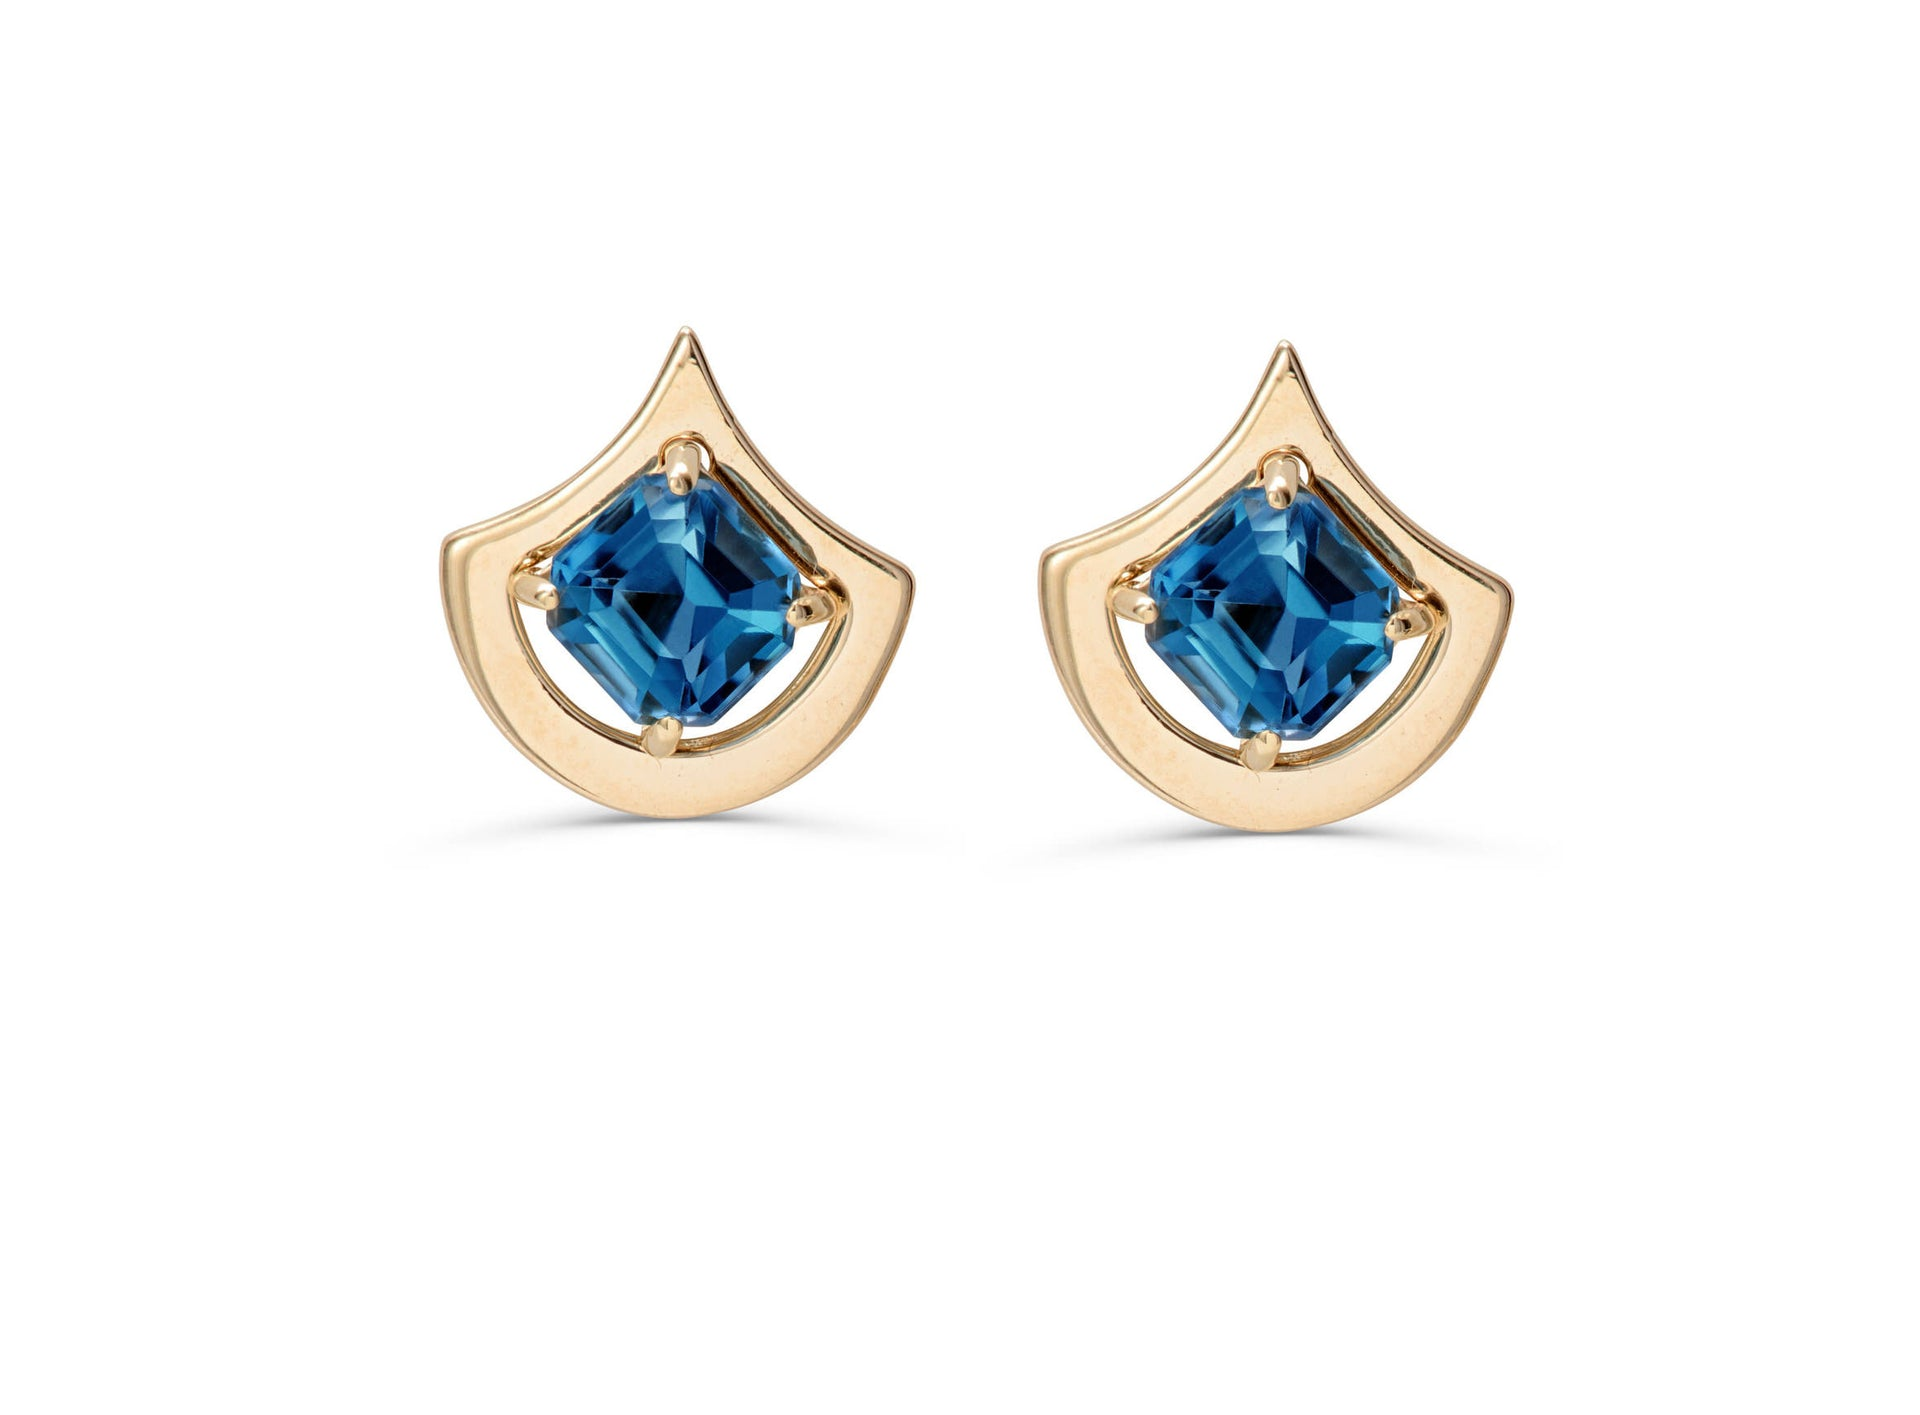 false collection arya crop upscale shop diamond subsampling with esha diamonds the galaxy and topaz scale earrings blue product comet